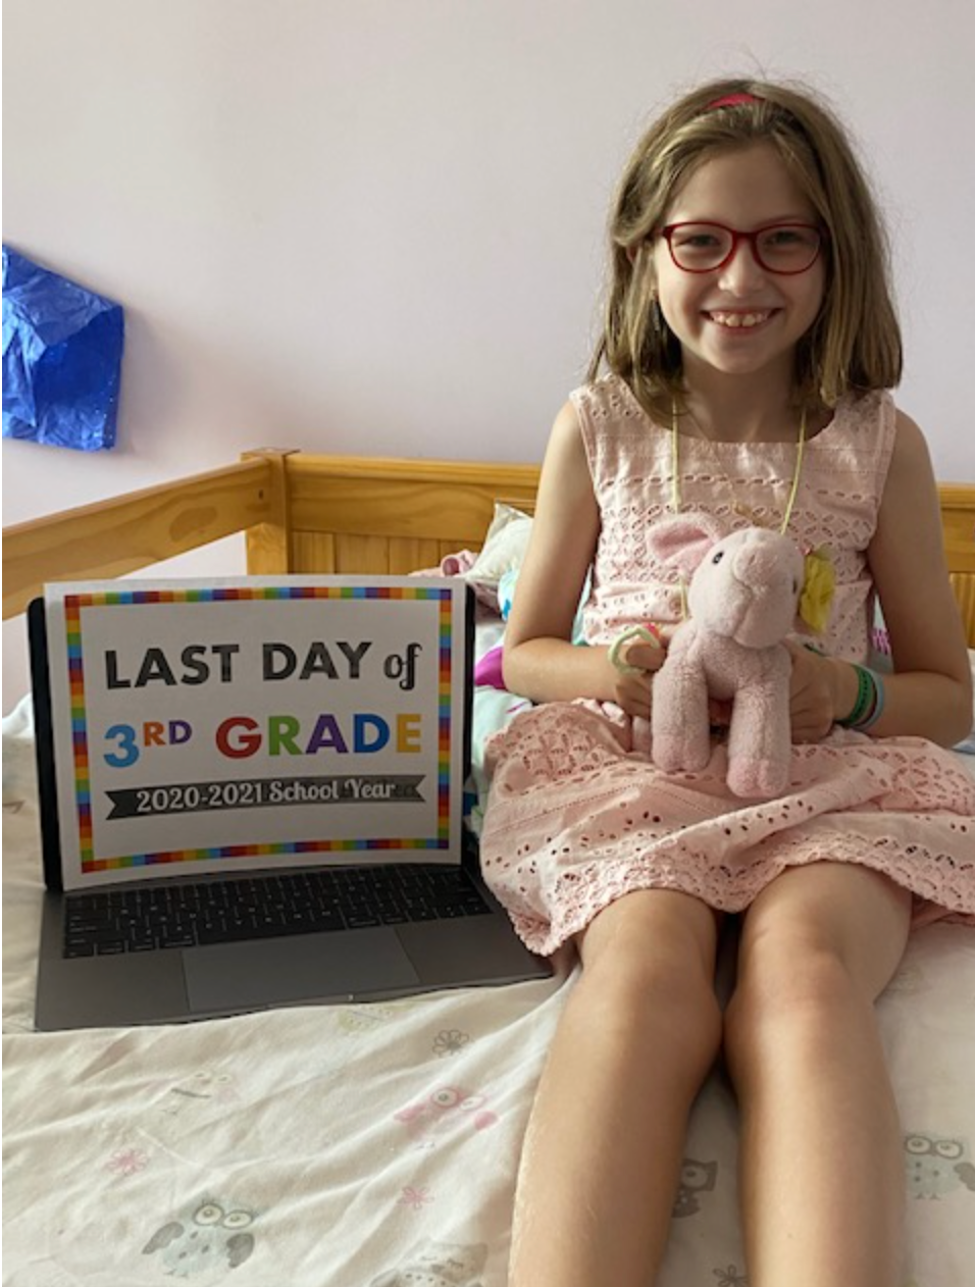 The author spent all of third grade working remotely on a computer stationed on her bed, with Twitchy her trusty stuffed pig by her side. But on September 13, it's back to the classroom